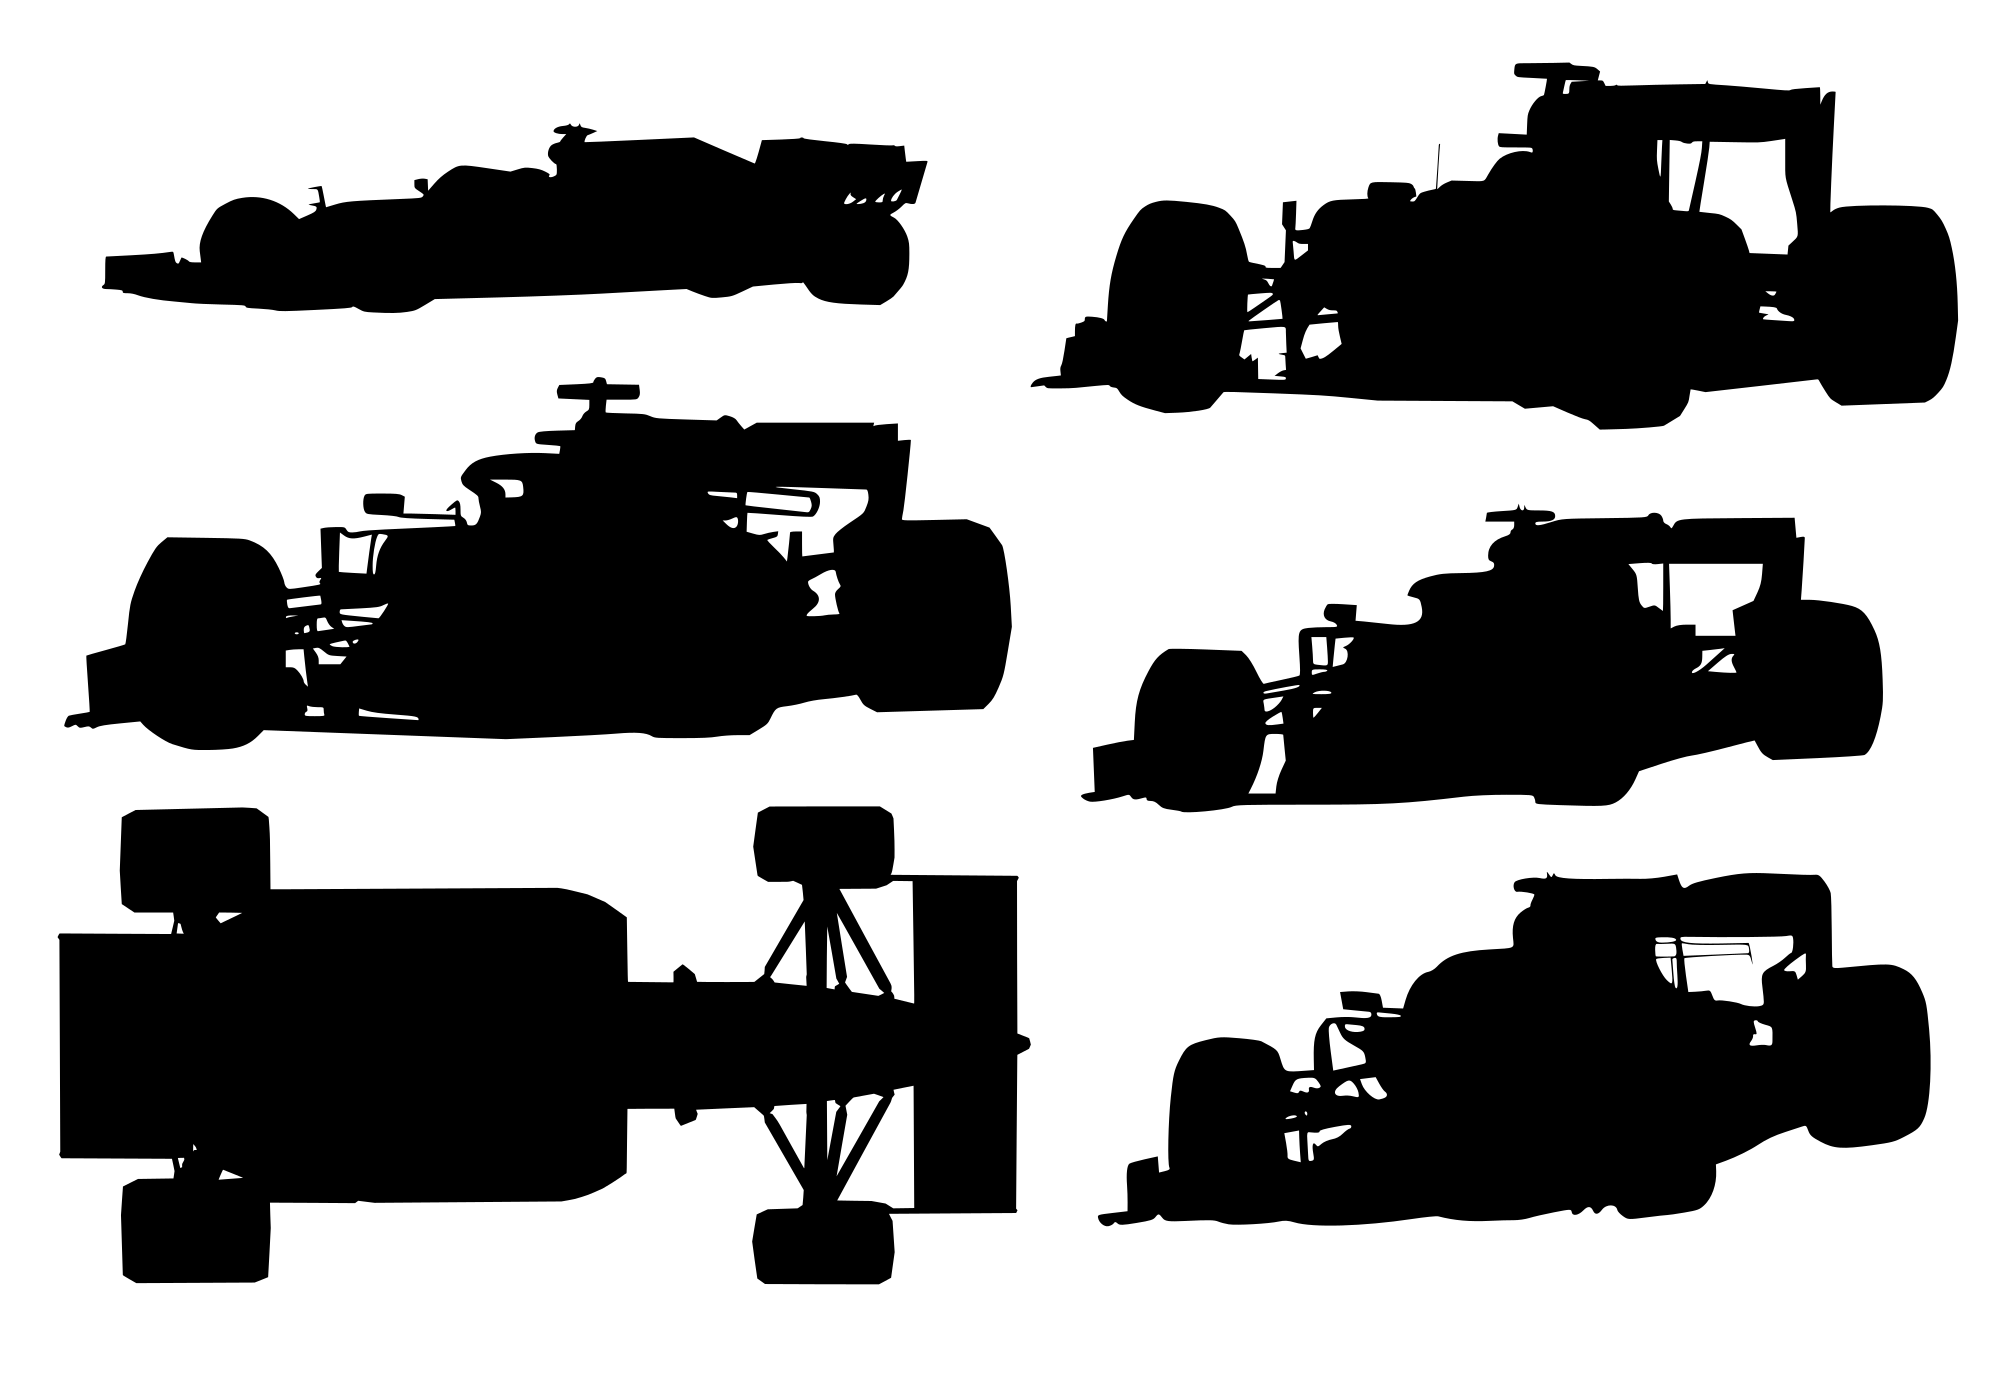 6-formula-1-racing-car-silhouette-cover.png